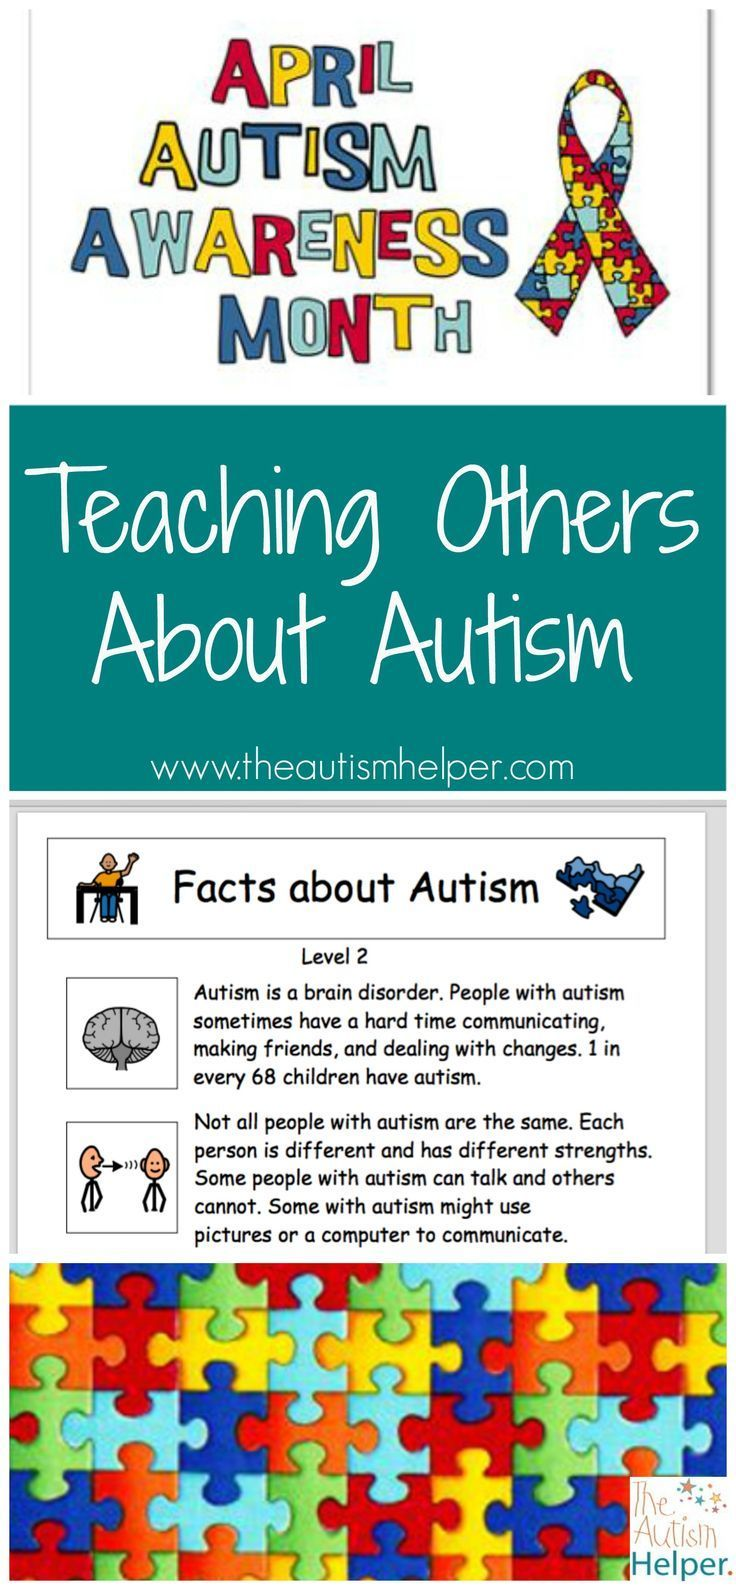 Tips for Teaching Others About Autism for April {Autism Awareness Month} From theautismhelper.com